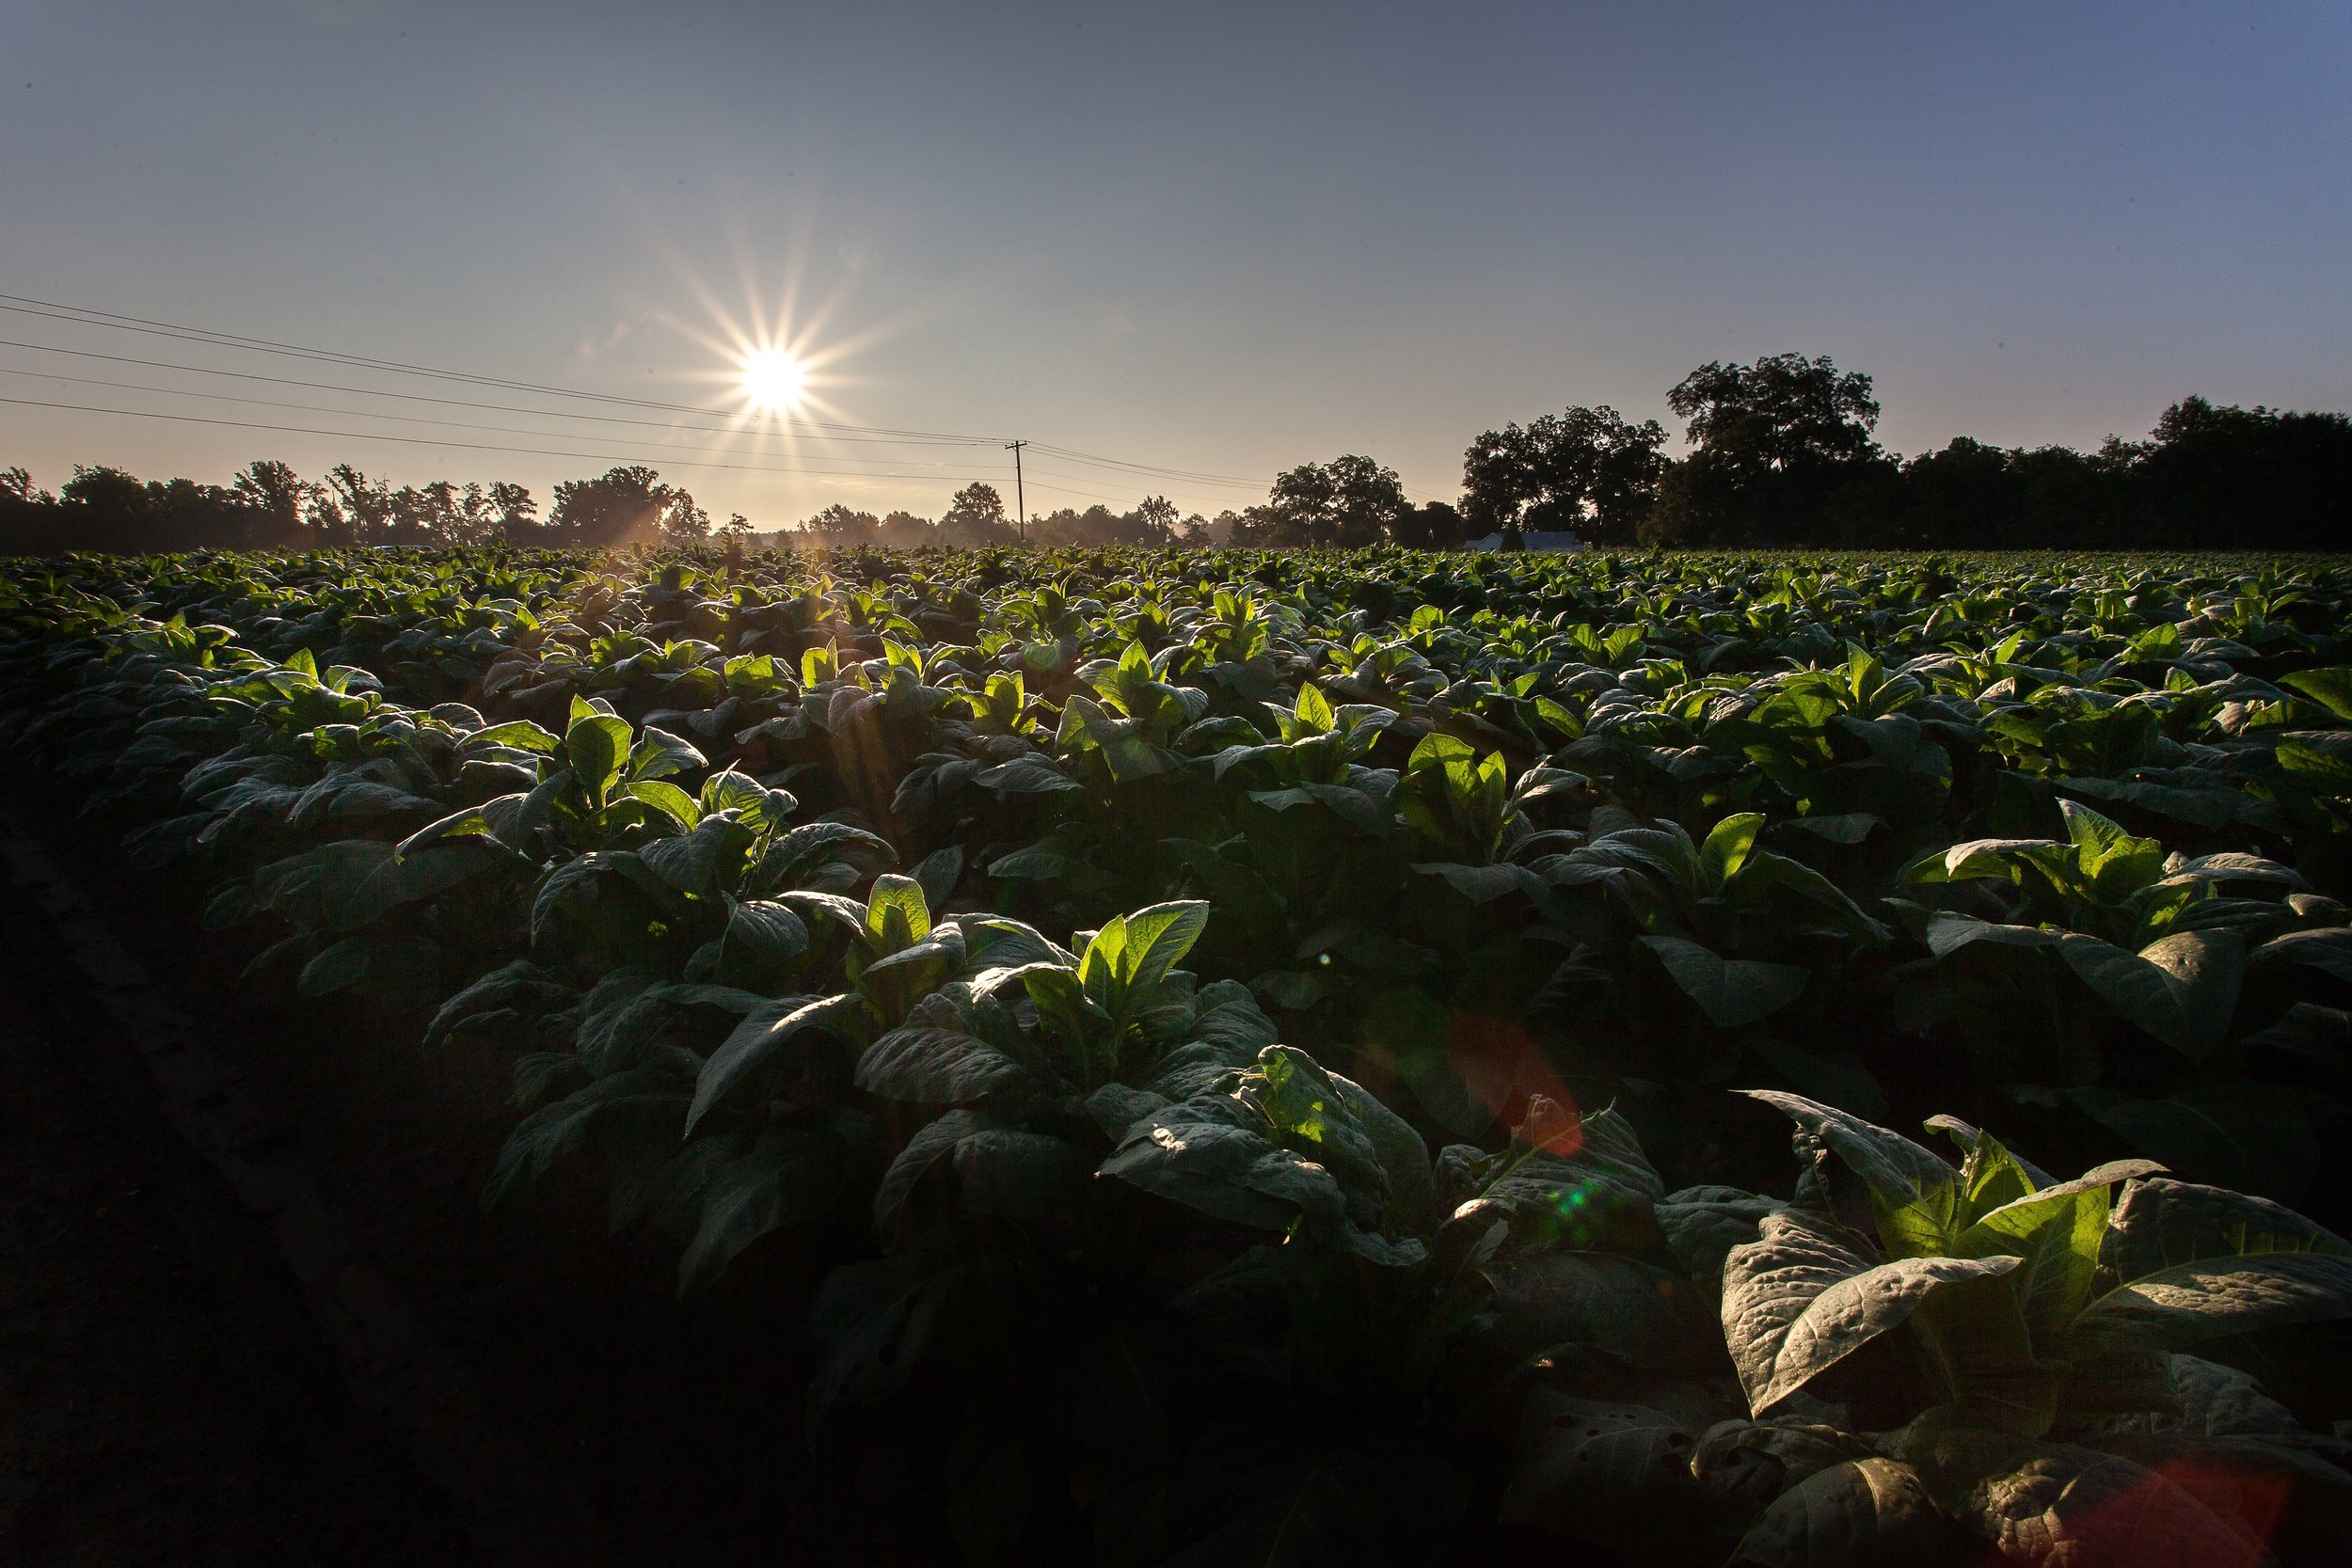 agriculture-close-up-clouds-2257524.jpg